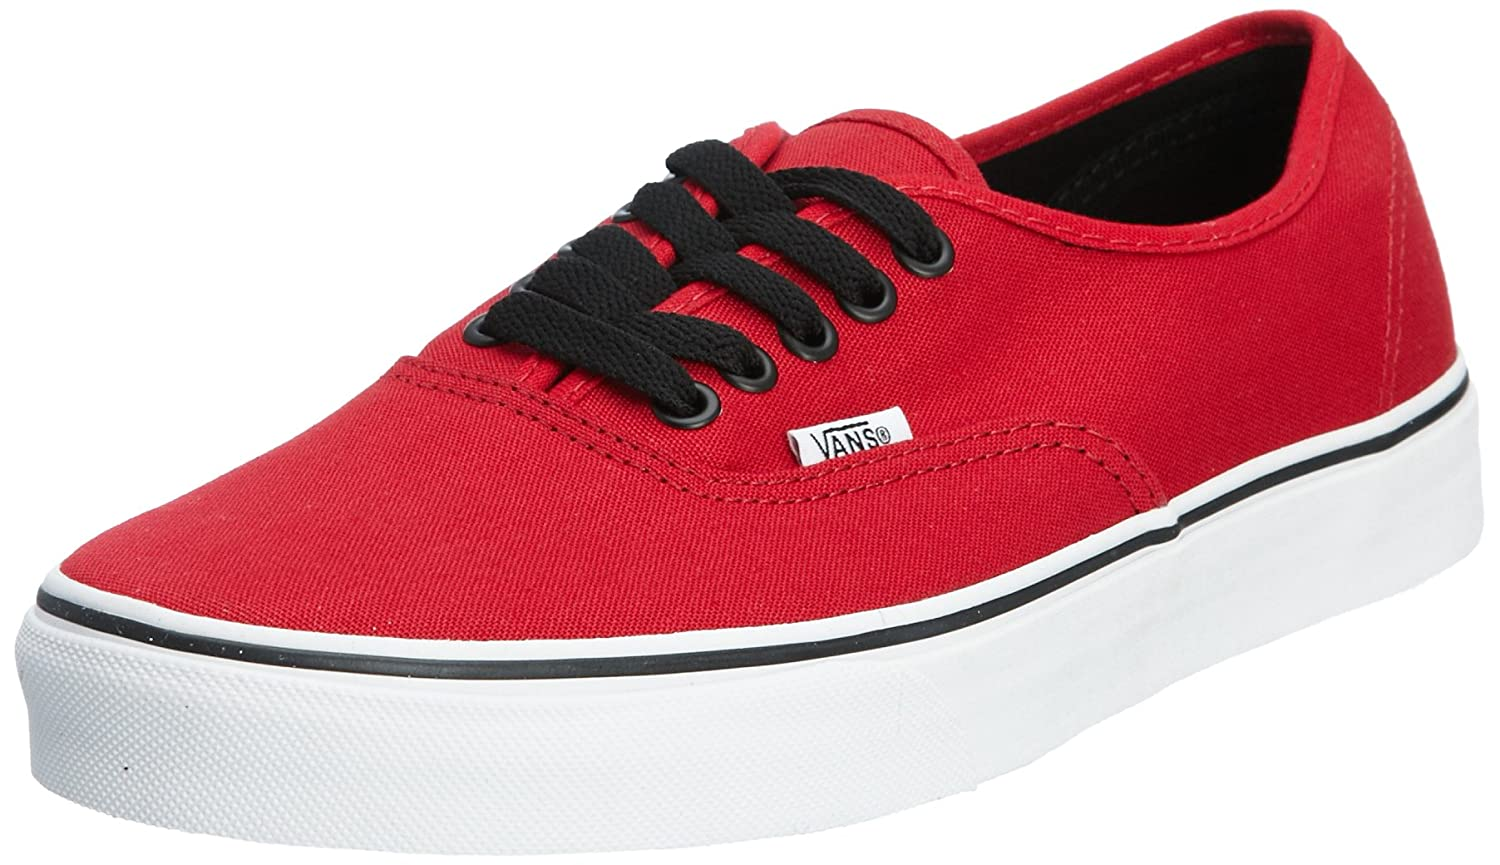 [バンズ] VANS VANS AUTHENTIC VEE3 B00592ODDY 11 D(M) US Men|Chili Pepper/Black Chili Pepper/Black 11 D(M) US Men